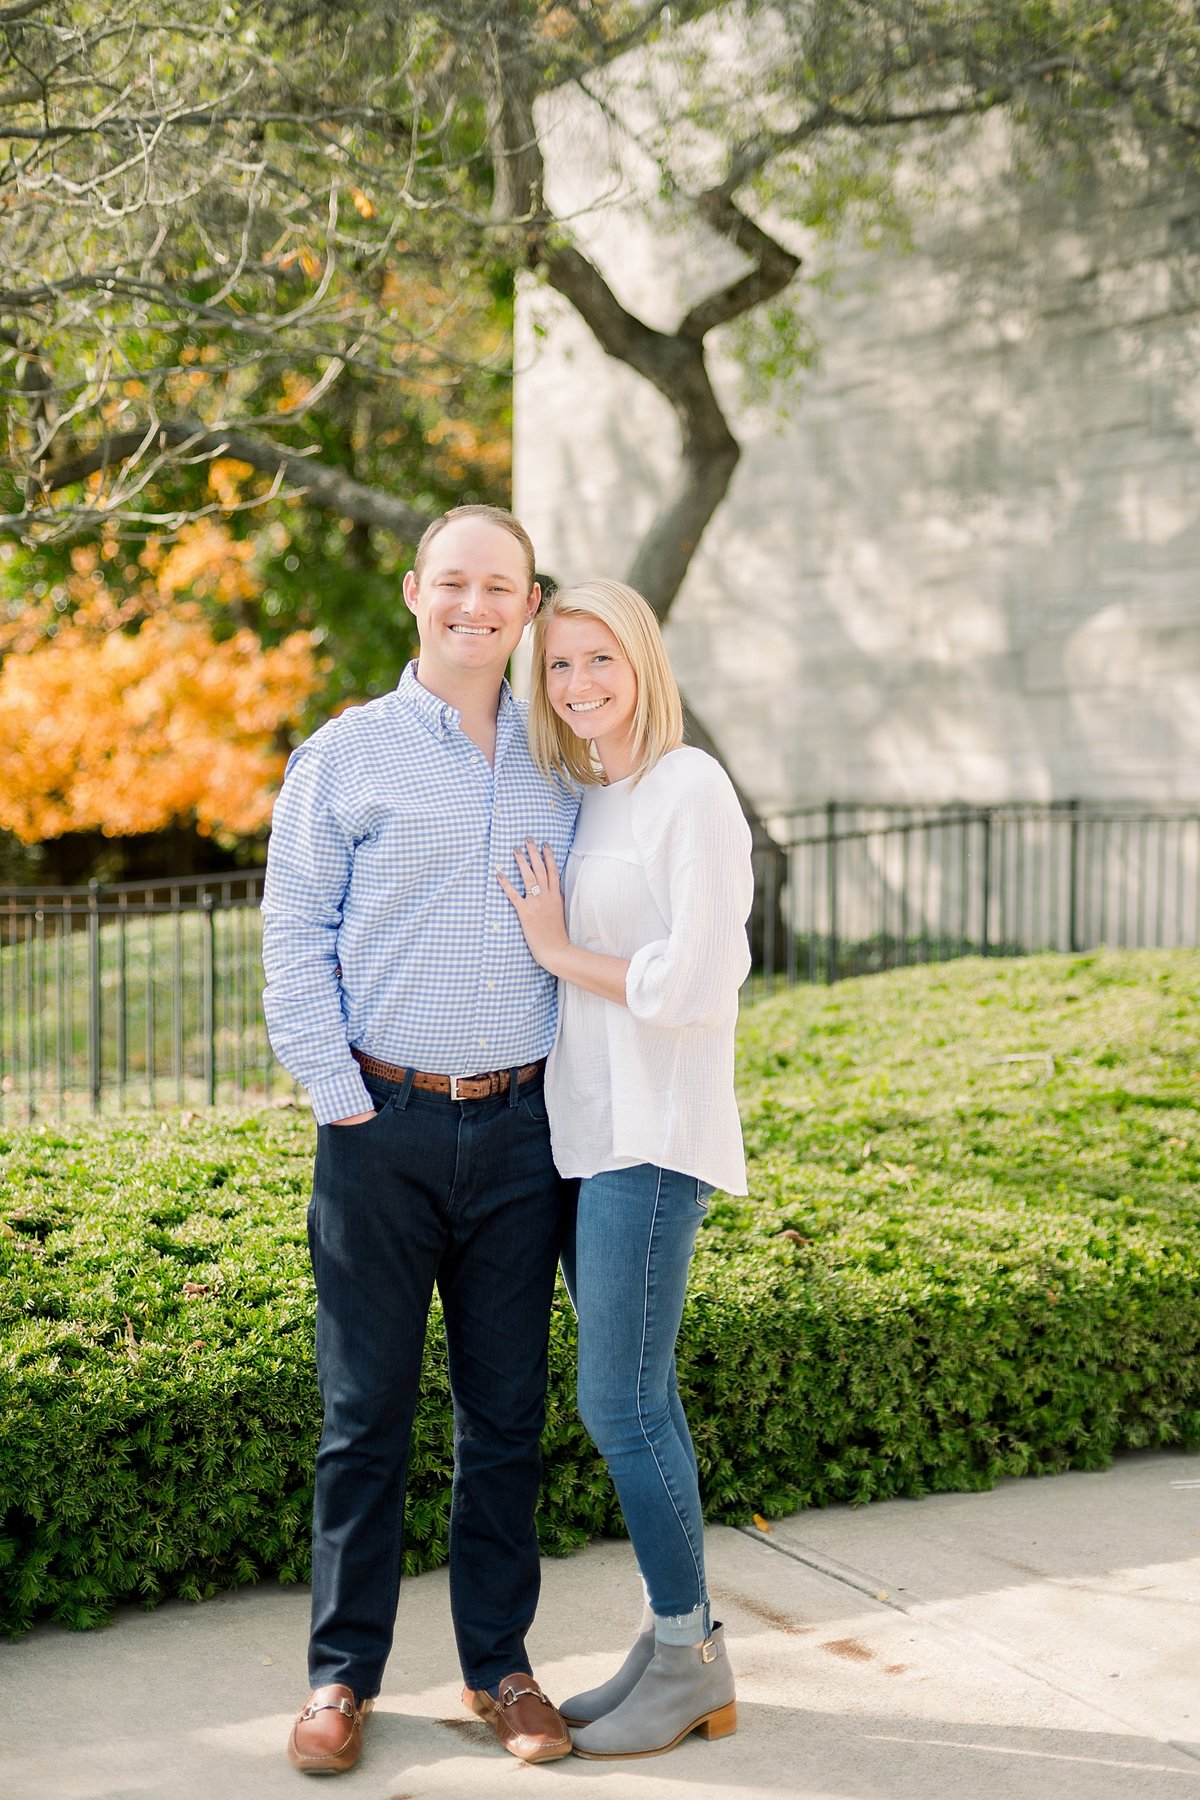 Holcomb Gardens Engagement Session Indianapolis, Indiana Wedding Photographer Alison Mae Photography_3174